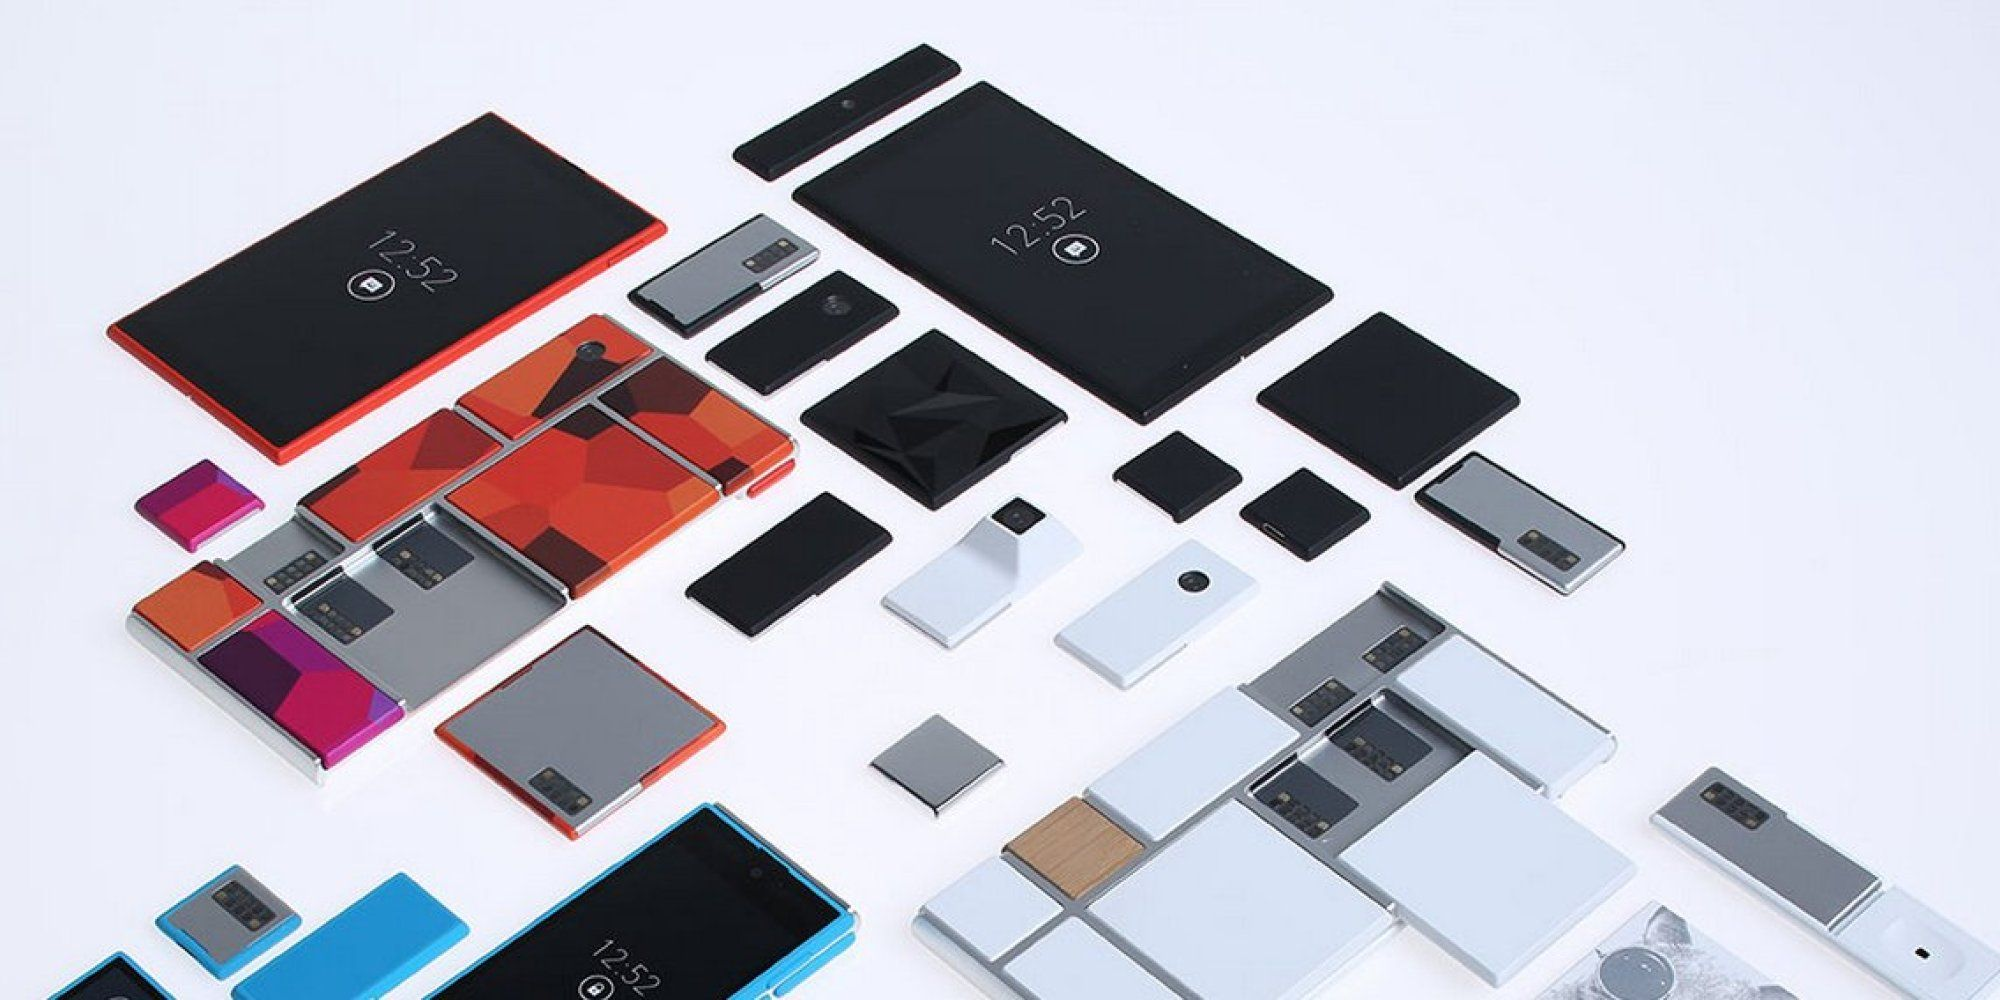 Facebook might have taken over the reins of Project Ara